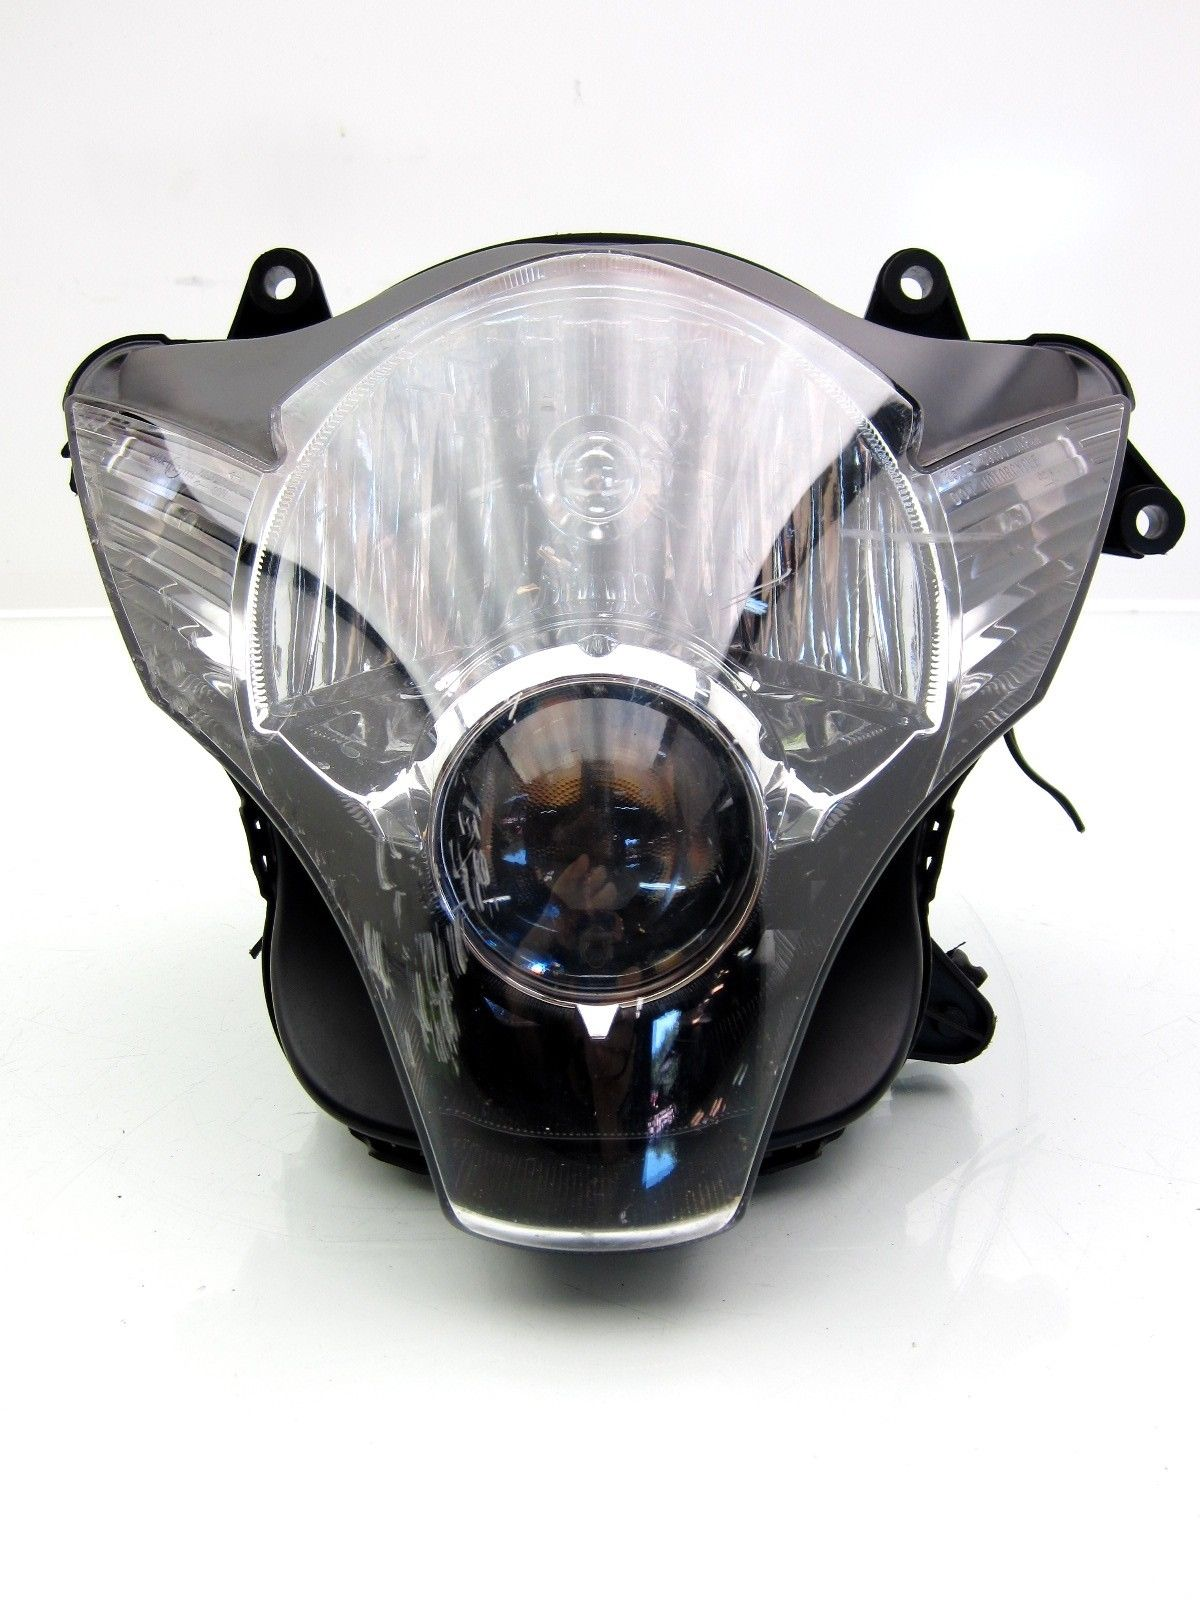 Headlight For Suzuki Gsxr 600 750 K6 2006 2007 Motor